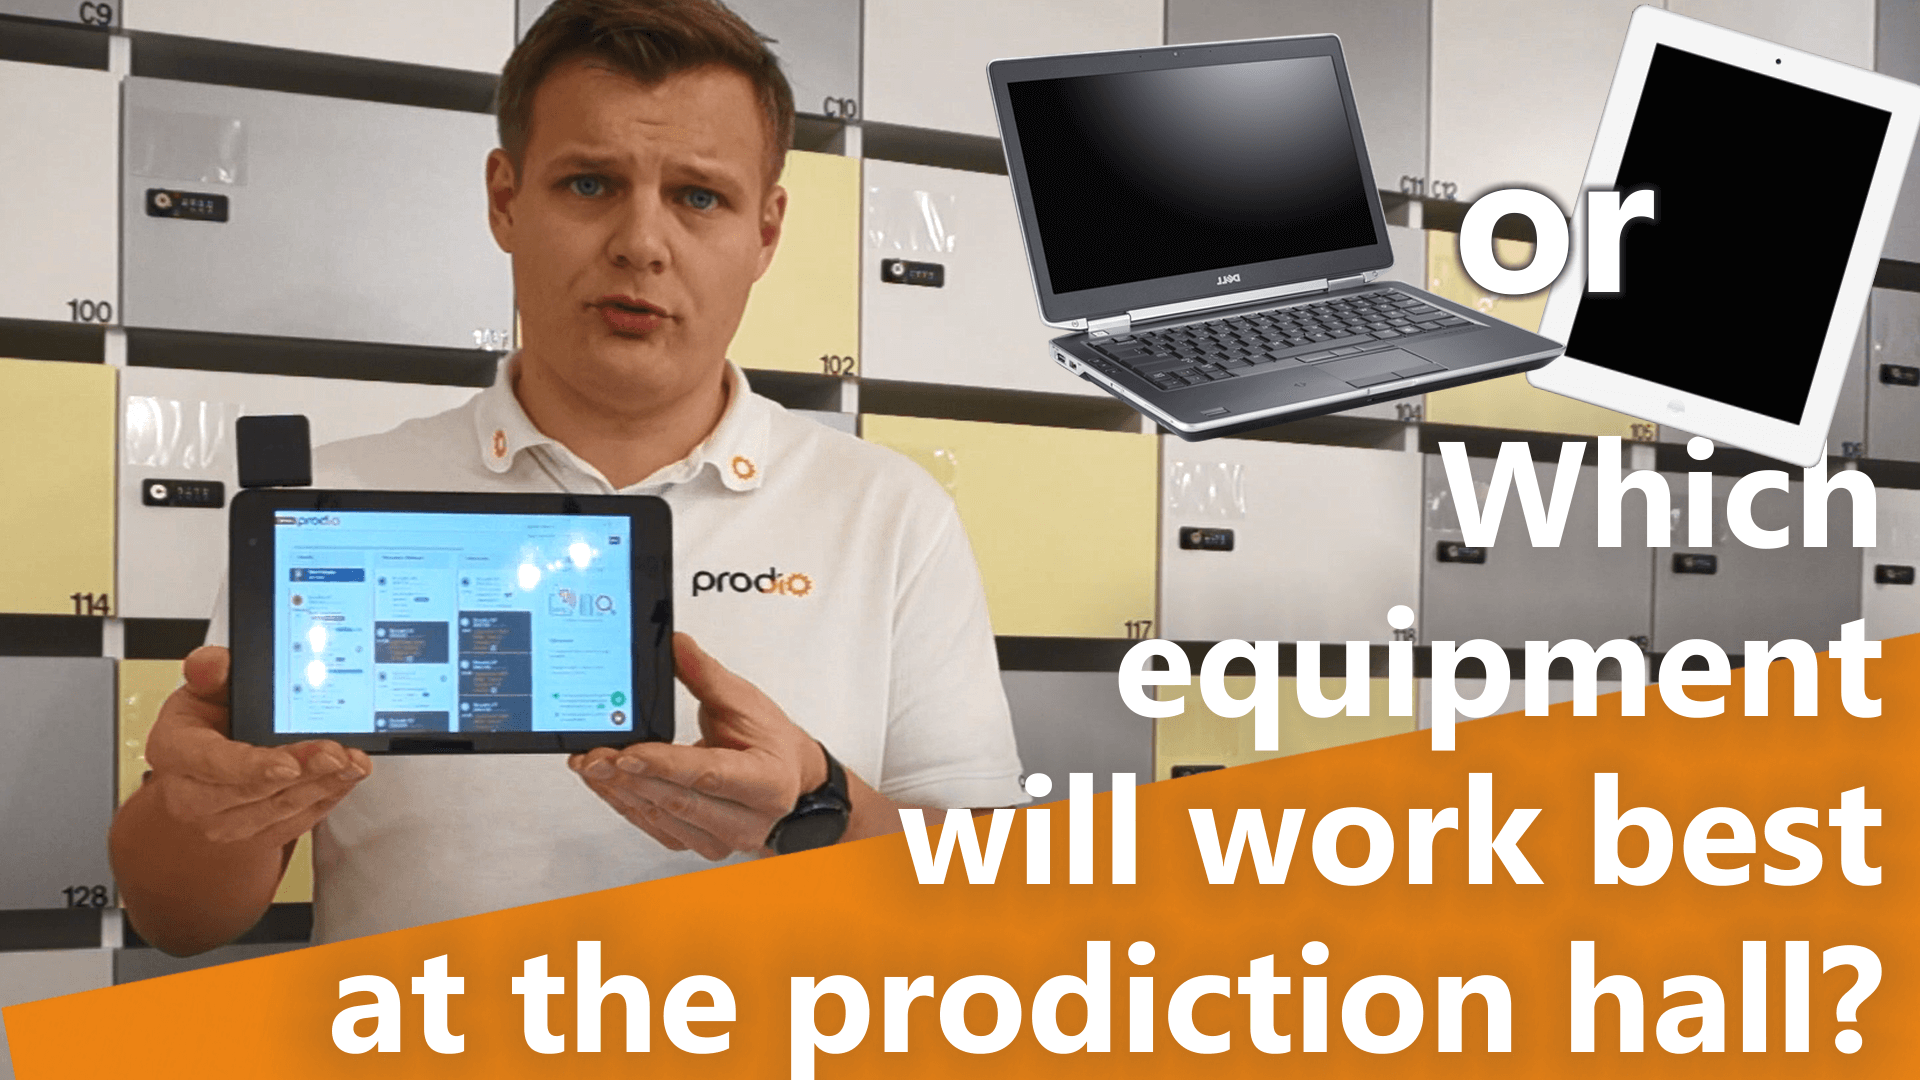 Which equipment will work best to register production at the production hall? Computer, tablet or something different?